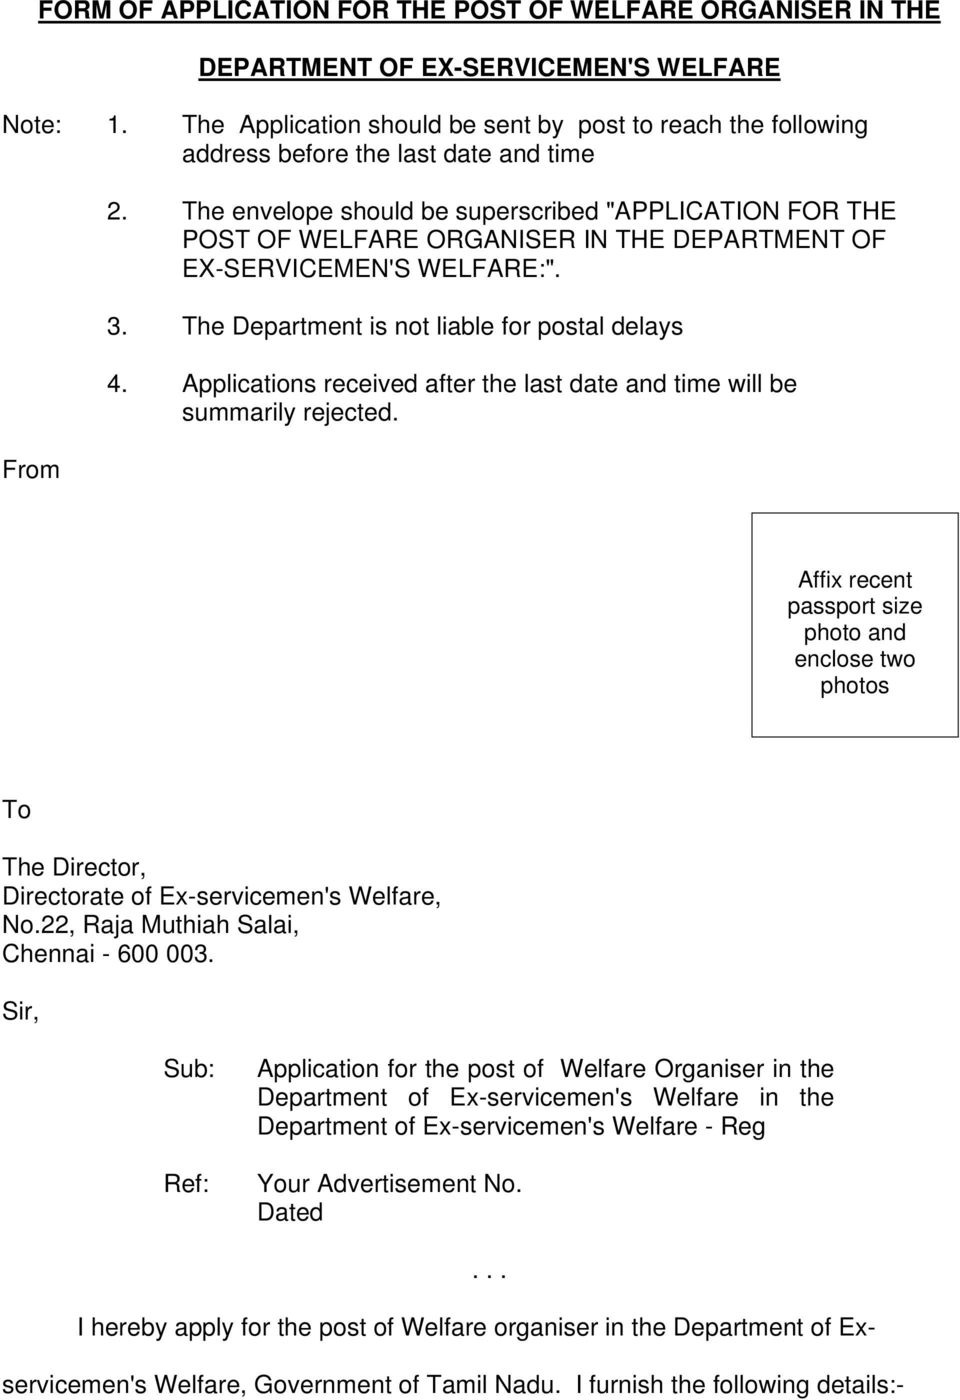 "The envelope should be superscribed ""APPLICATION FOR THE POST OF WELFARE ORGANISER IN THE DEPARTMENT OF EX-SERVICEMEN'S WELFARE"". 3. The Department is not liable for postal delays 4."